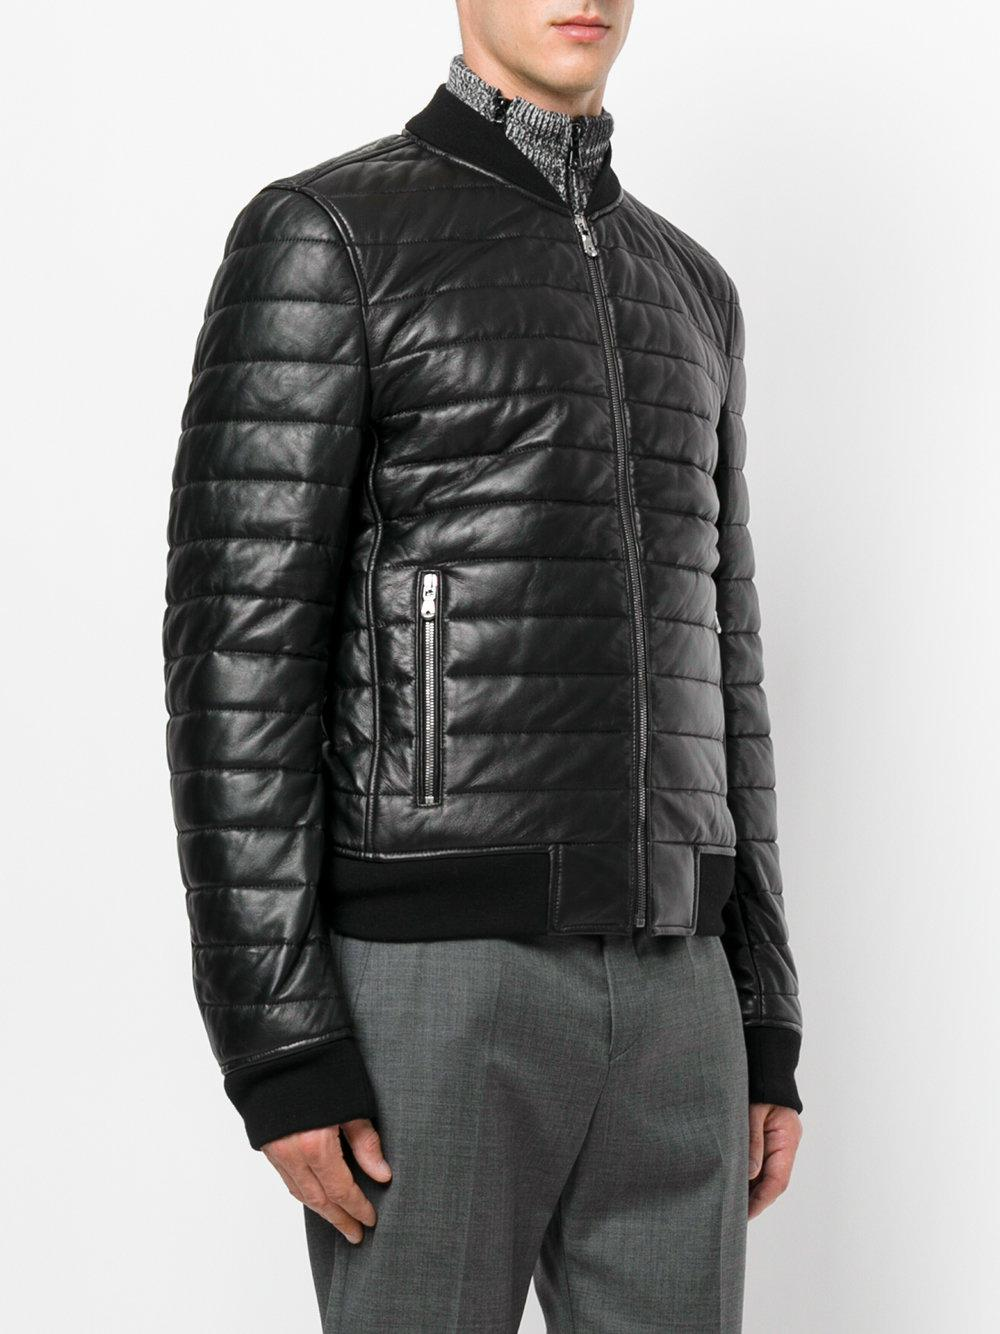 Dolce & Gabbana Leather Padded Jacket in Black for Men